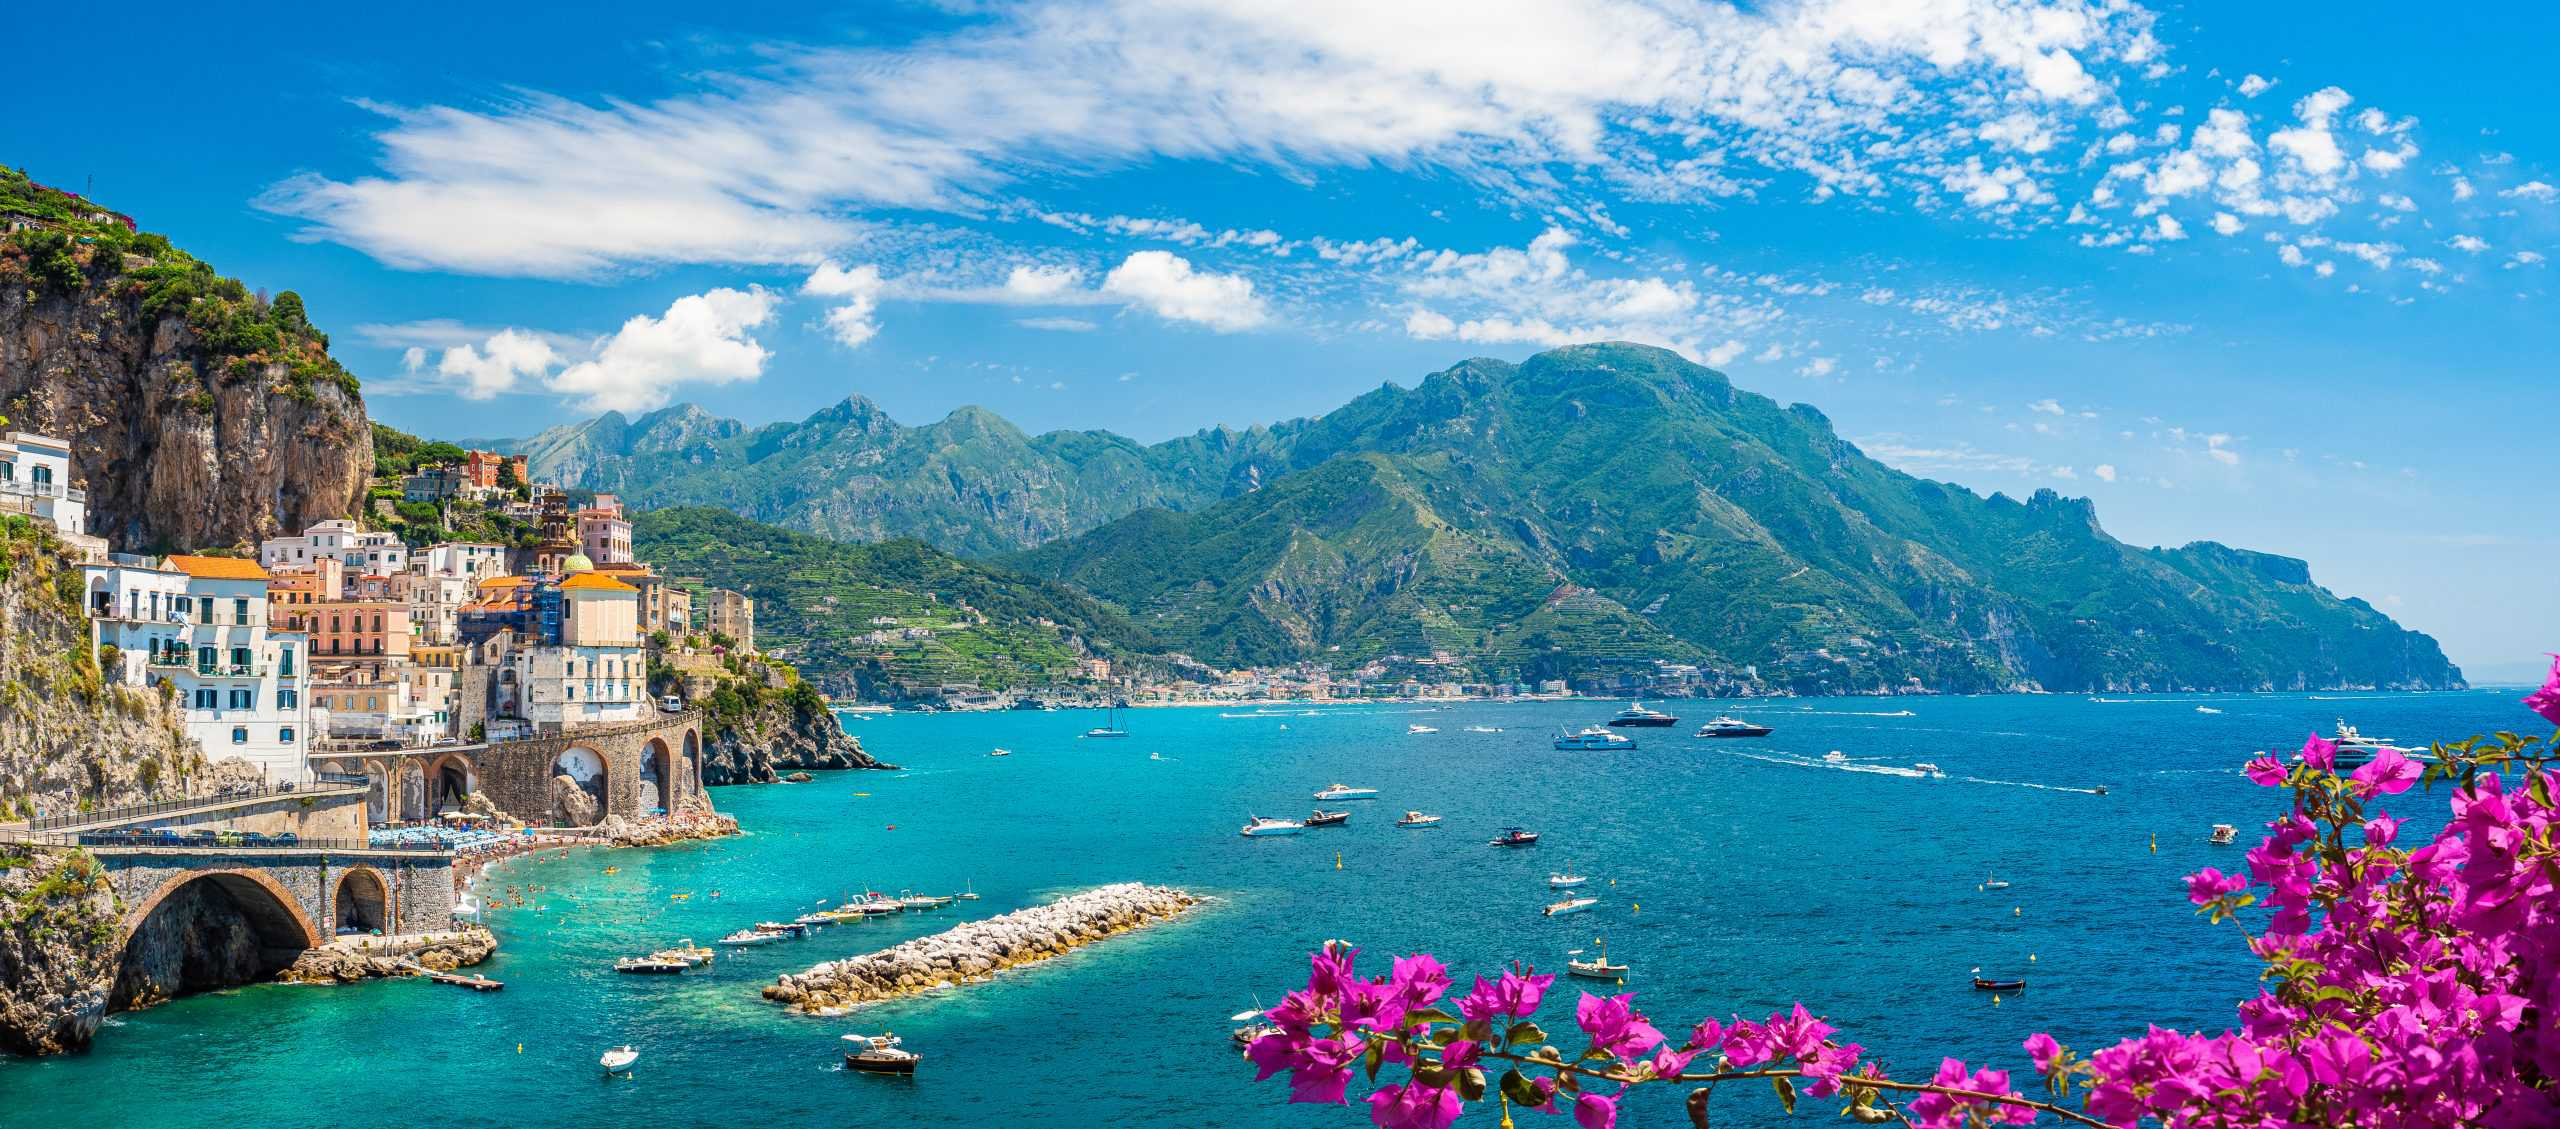 Panorama of Amalfi Coast in September, best time to visit